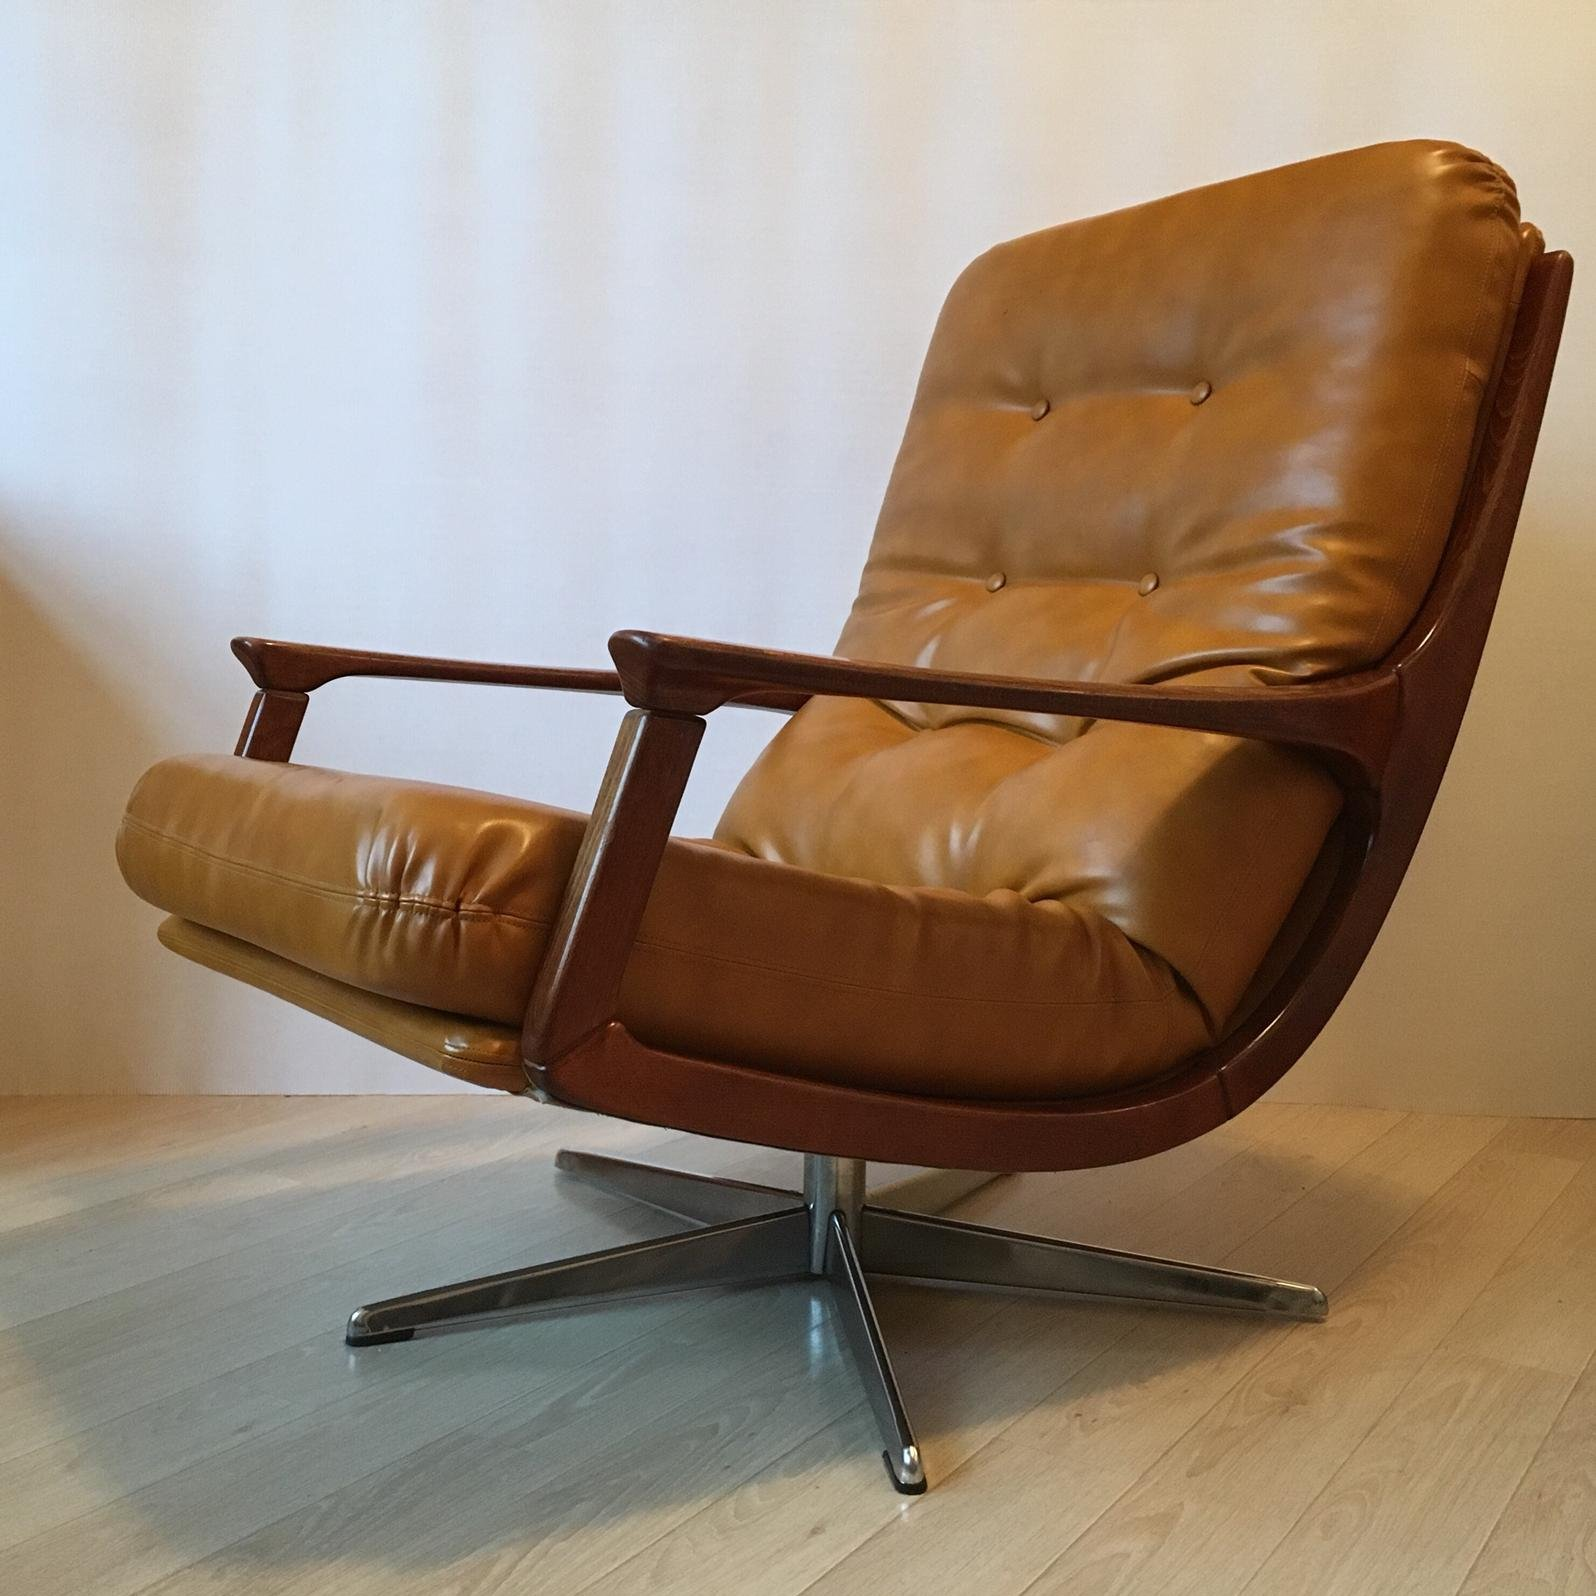 Magnificent Midcentury Modern German Camel Leather Swivel Lounge Chair Pdpeps Interior Chair Design Pdpepsorg